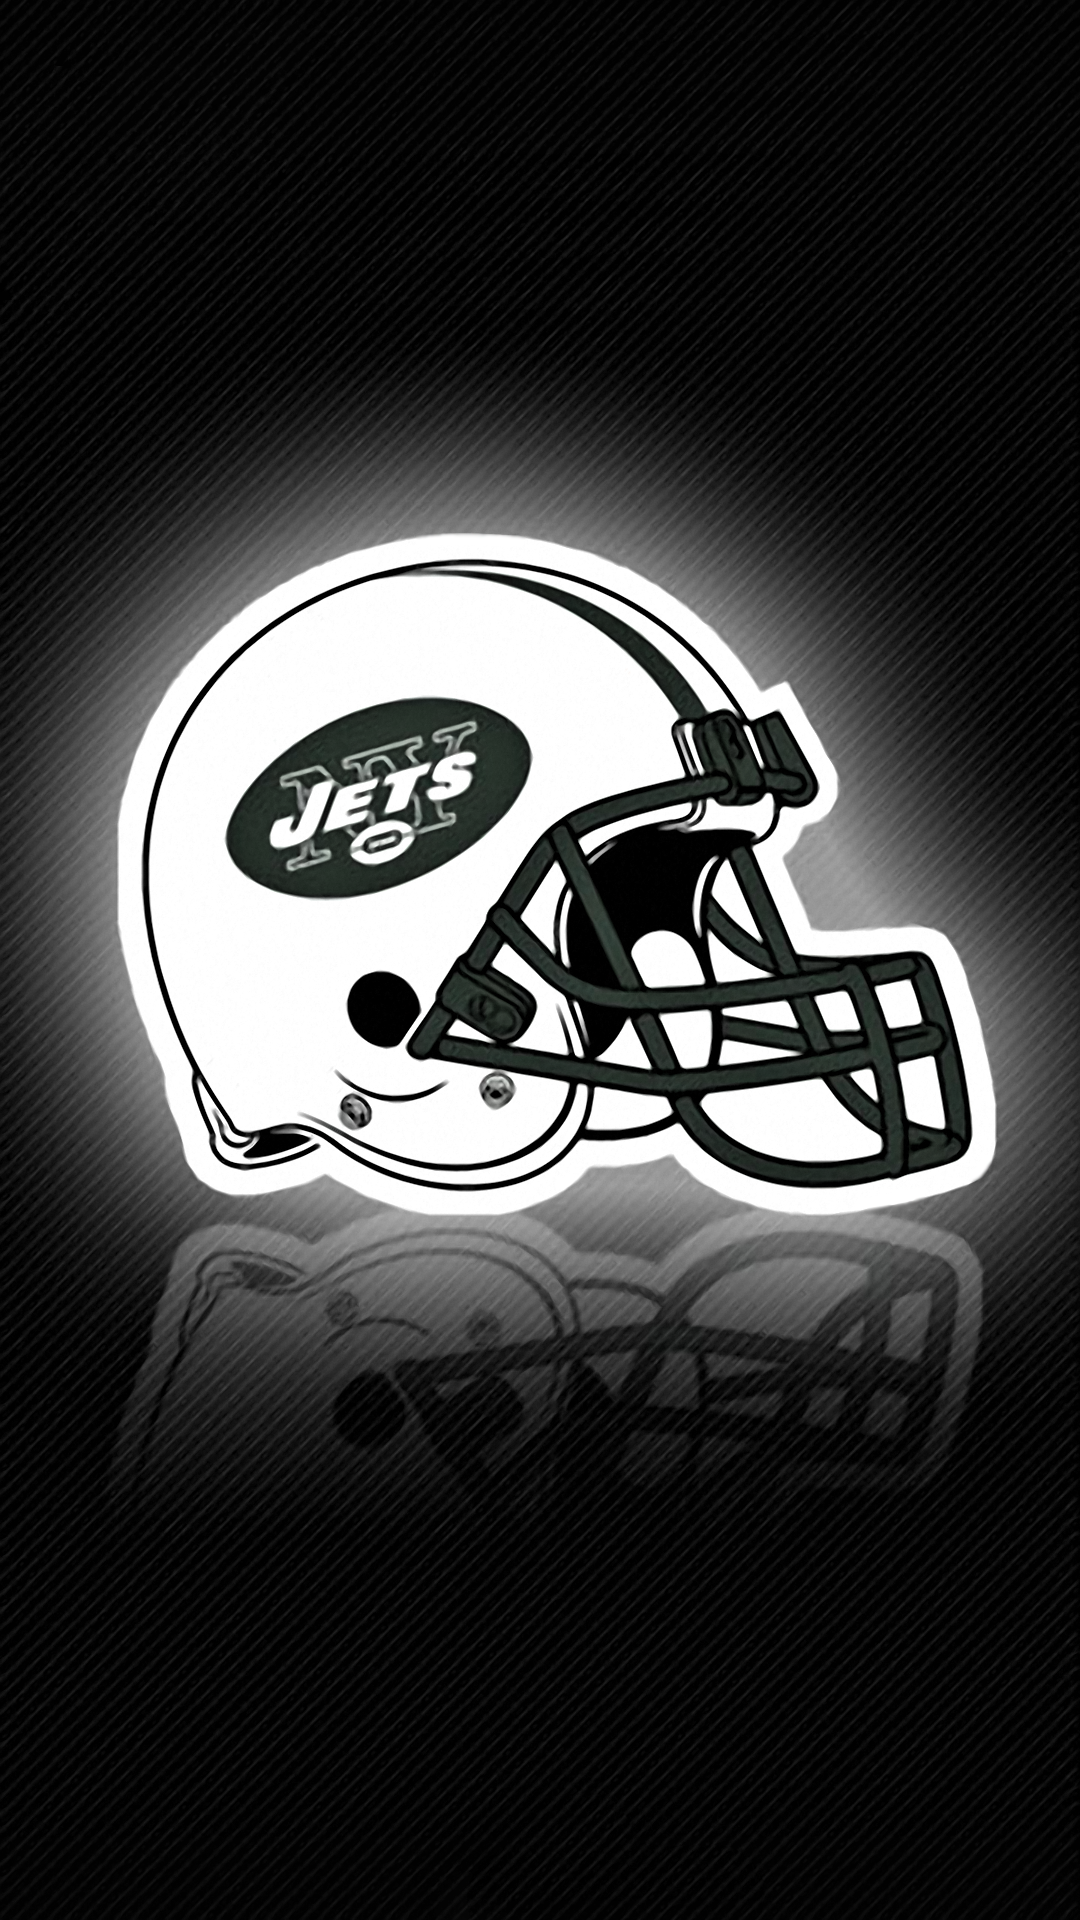 New York Jets Live Wallpaper Download New York Jets Live